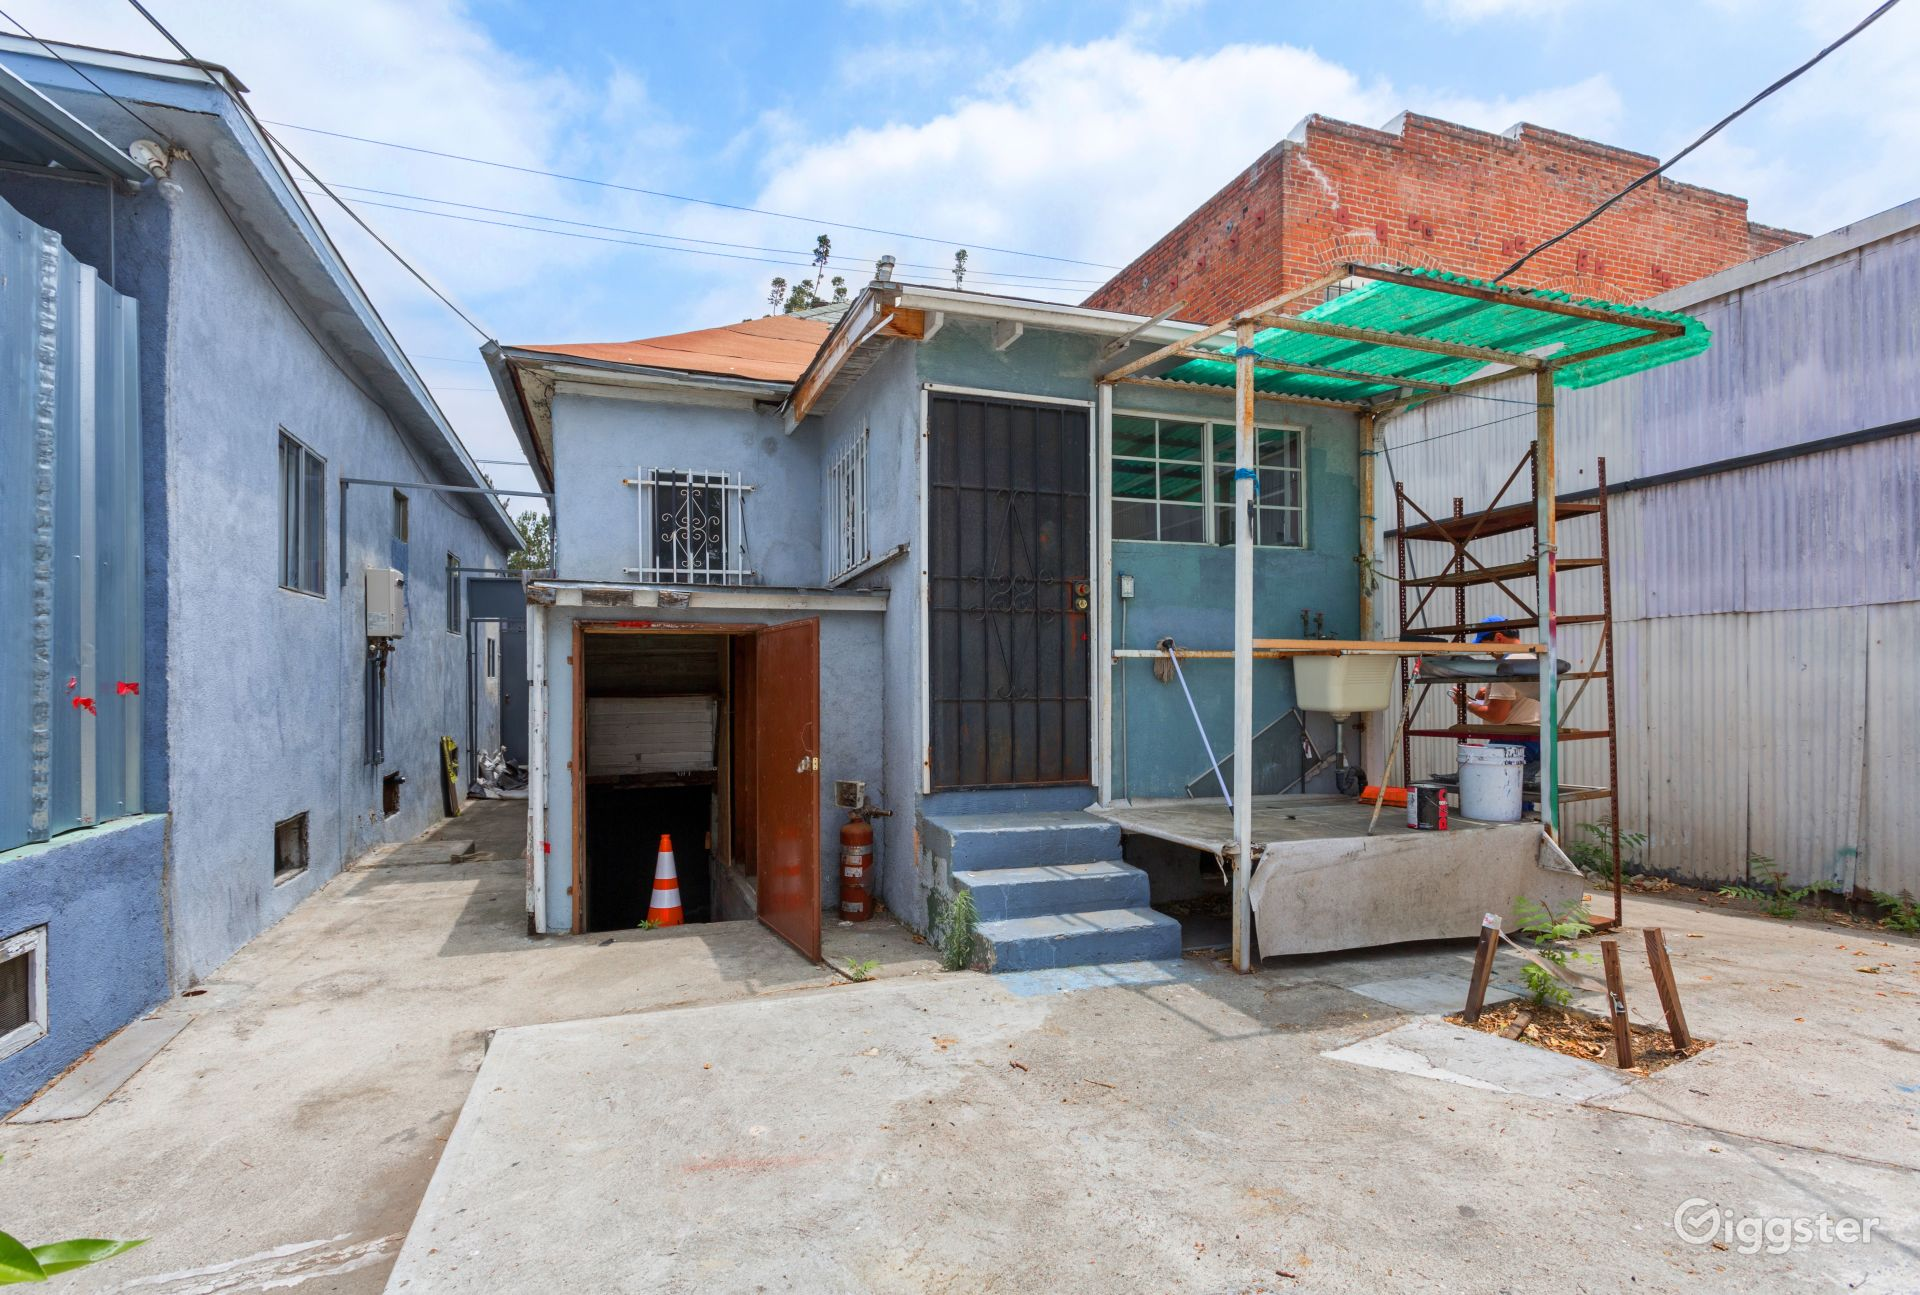 Downtown L.A Stripped House near L.A Civic Center Los Angeles Rental